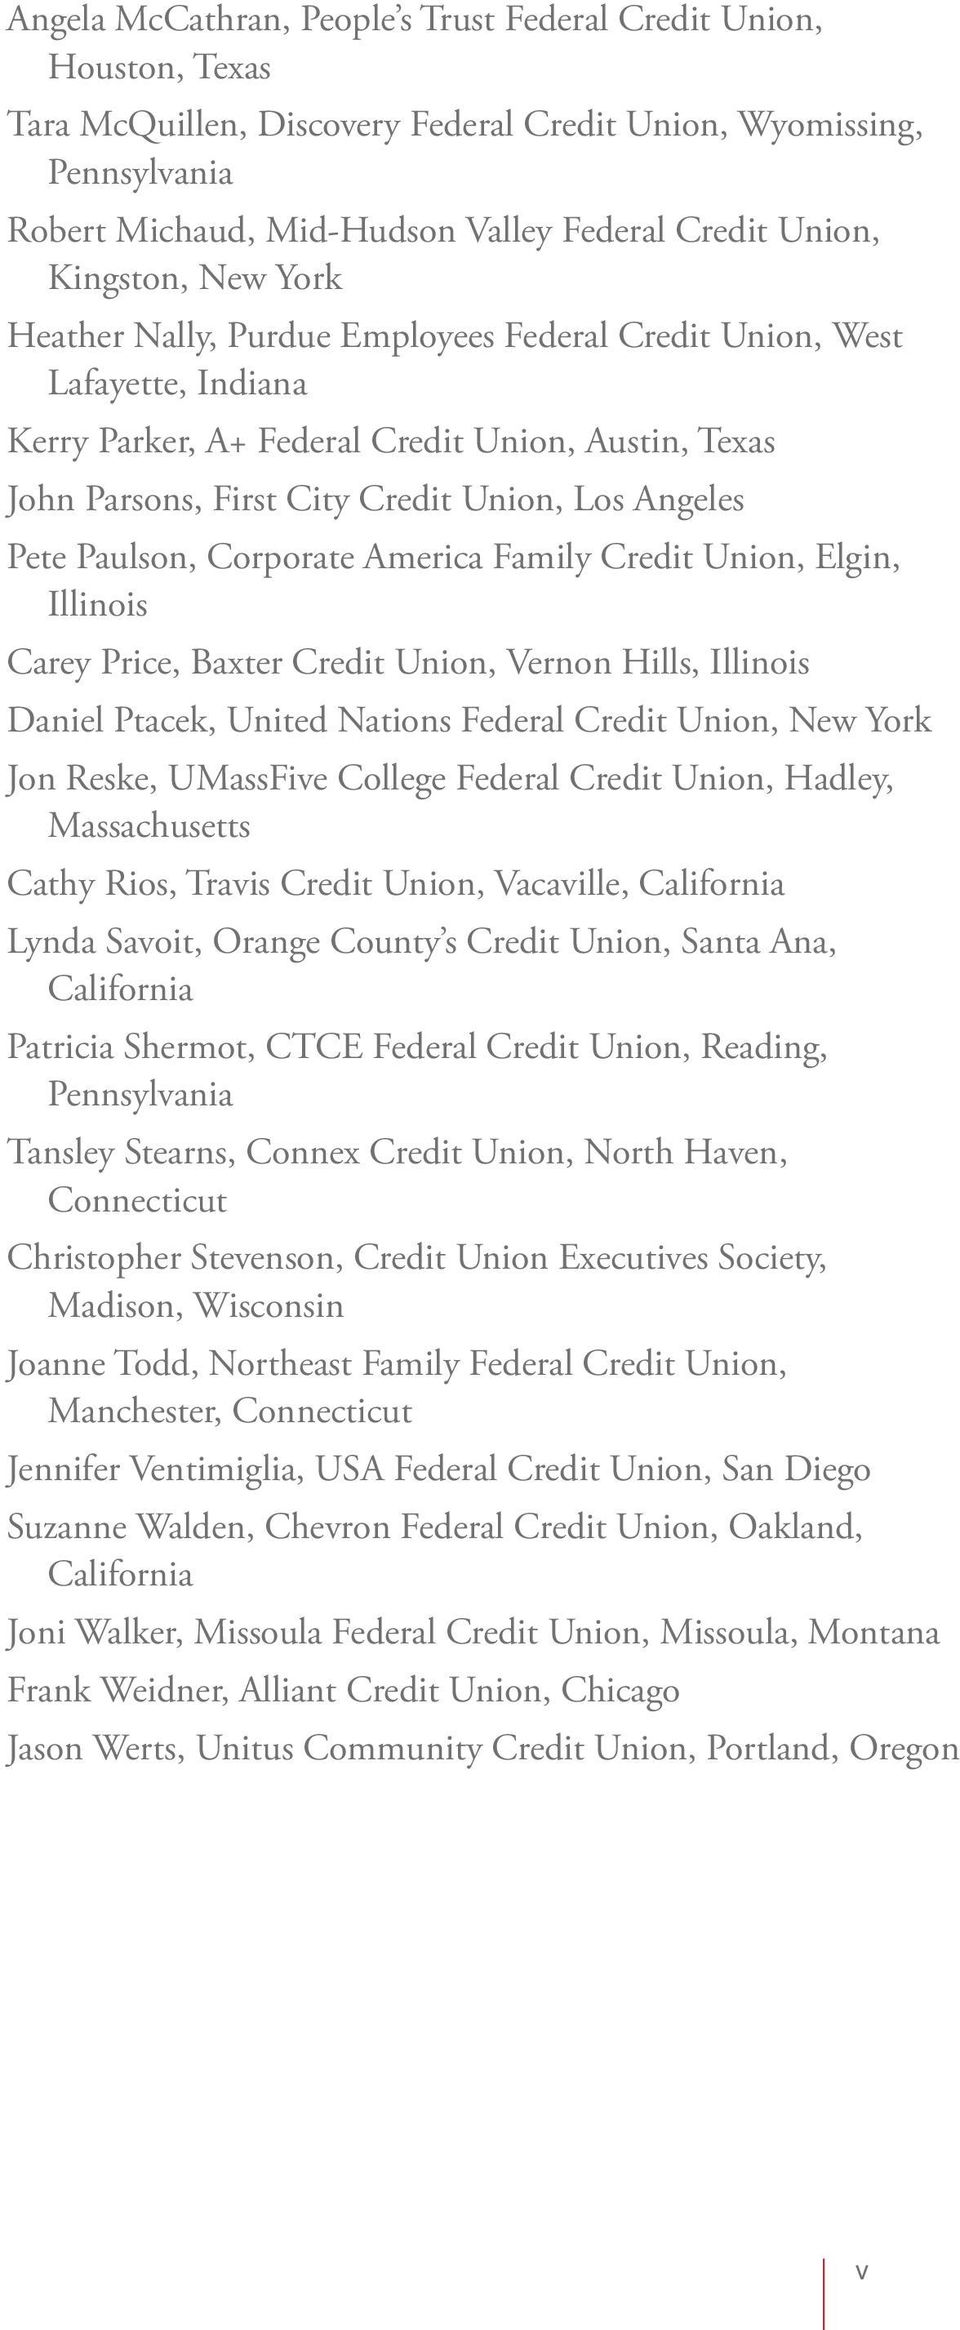 Credit Union, Los Angeles Pete Paulson, Corporate America Family Credit Union, Elgin, Illinois Carey Price, Baxter Credit Union, Vernon Hills, Illinois Daniel Ptacek, United Nations Federal Credit